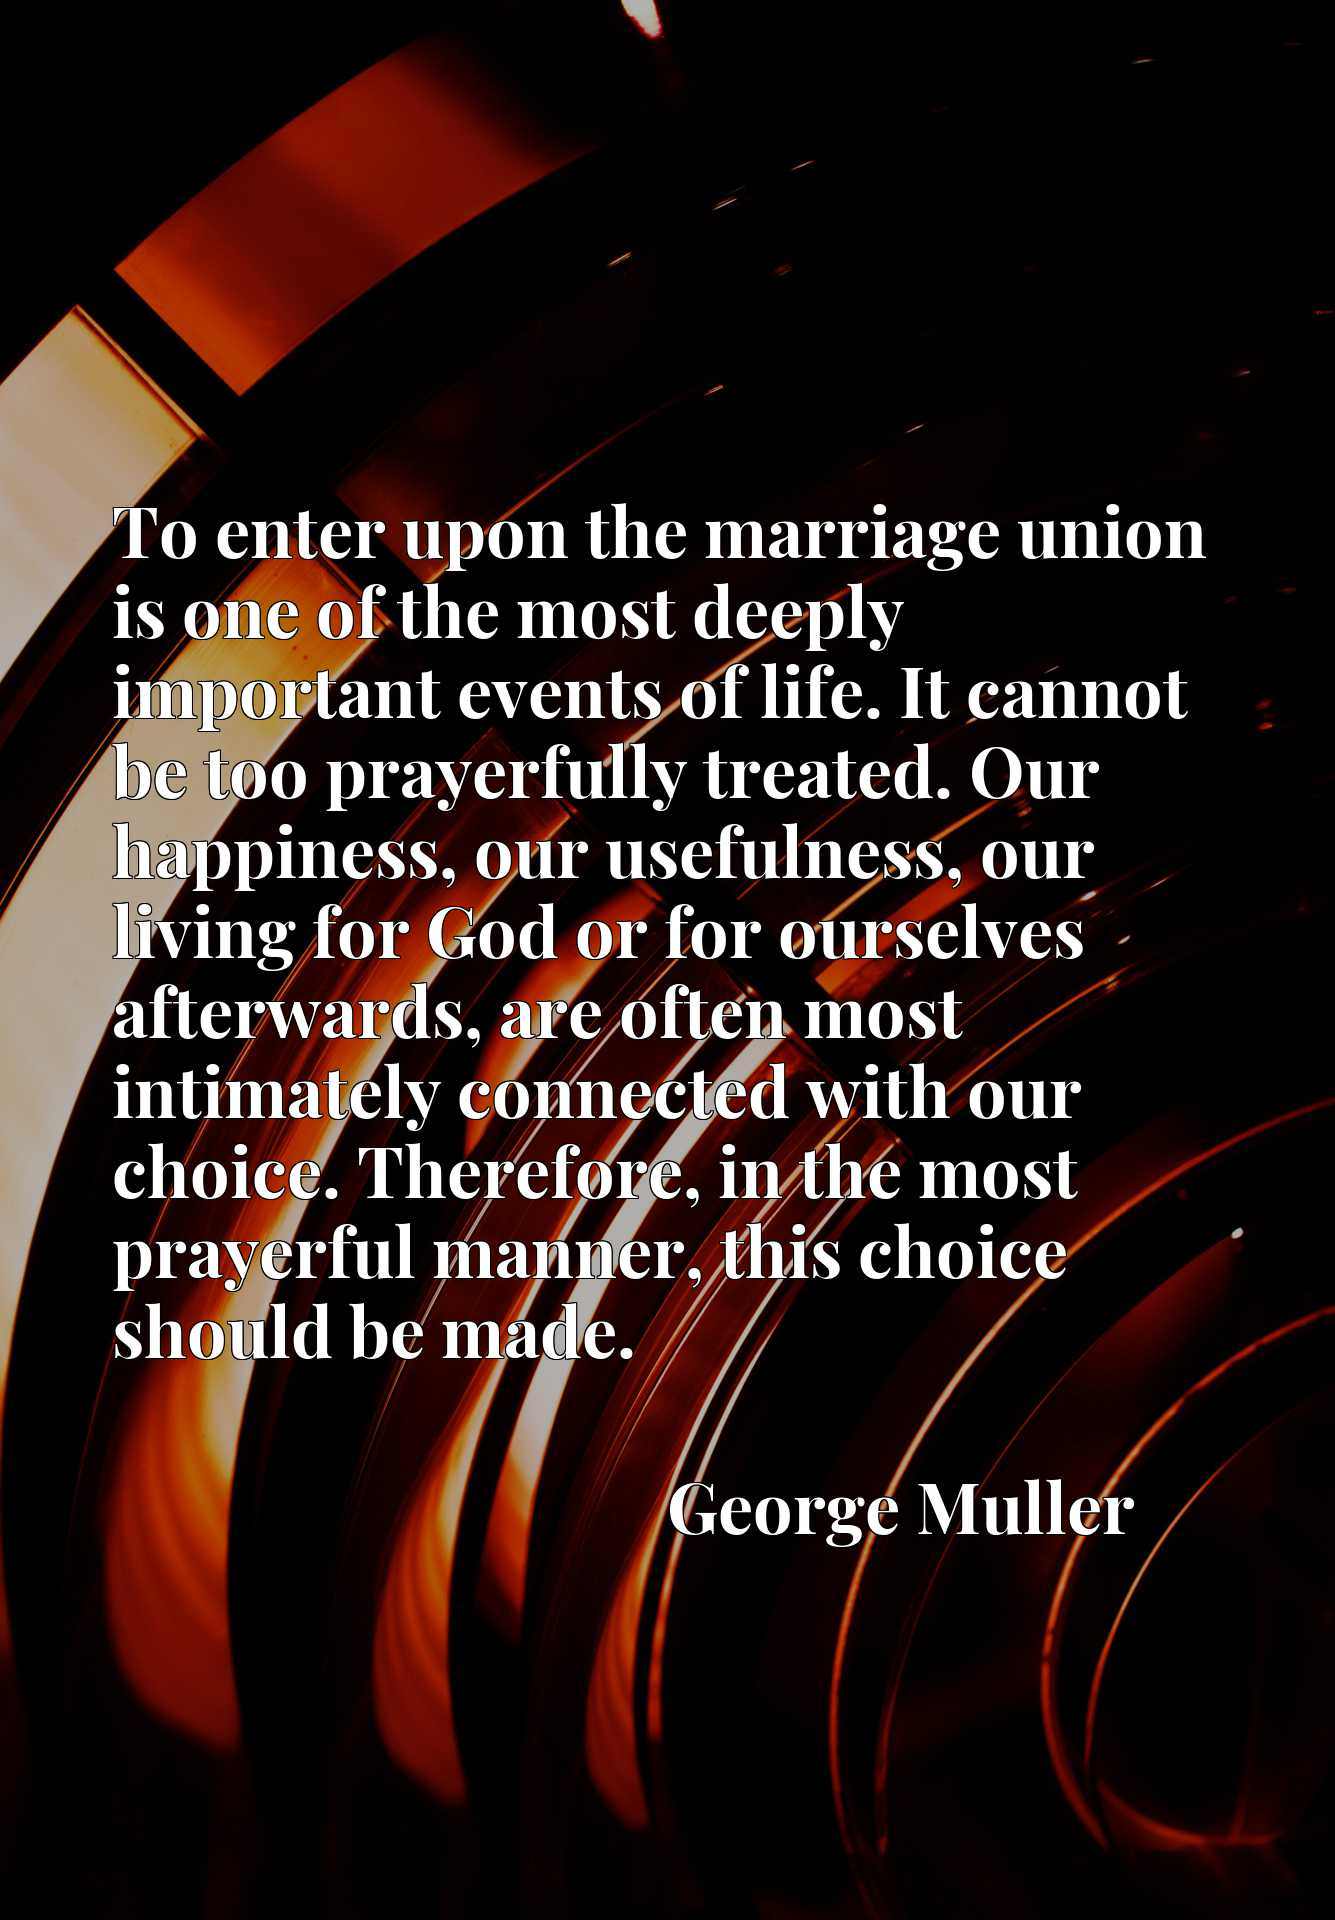 To enter upon the marriage union is one of the most deeply important events of life. It cannot be too prayerfully treated. Our happiness, our usefulness, our living for God or for ourselves afterwards, are often most intimately connected with our choice. Therefore, in the most prayerful manner, this choice should be made.